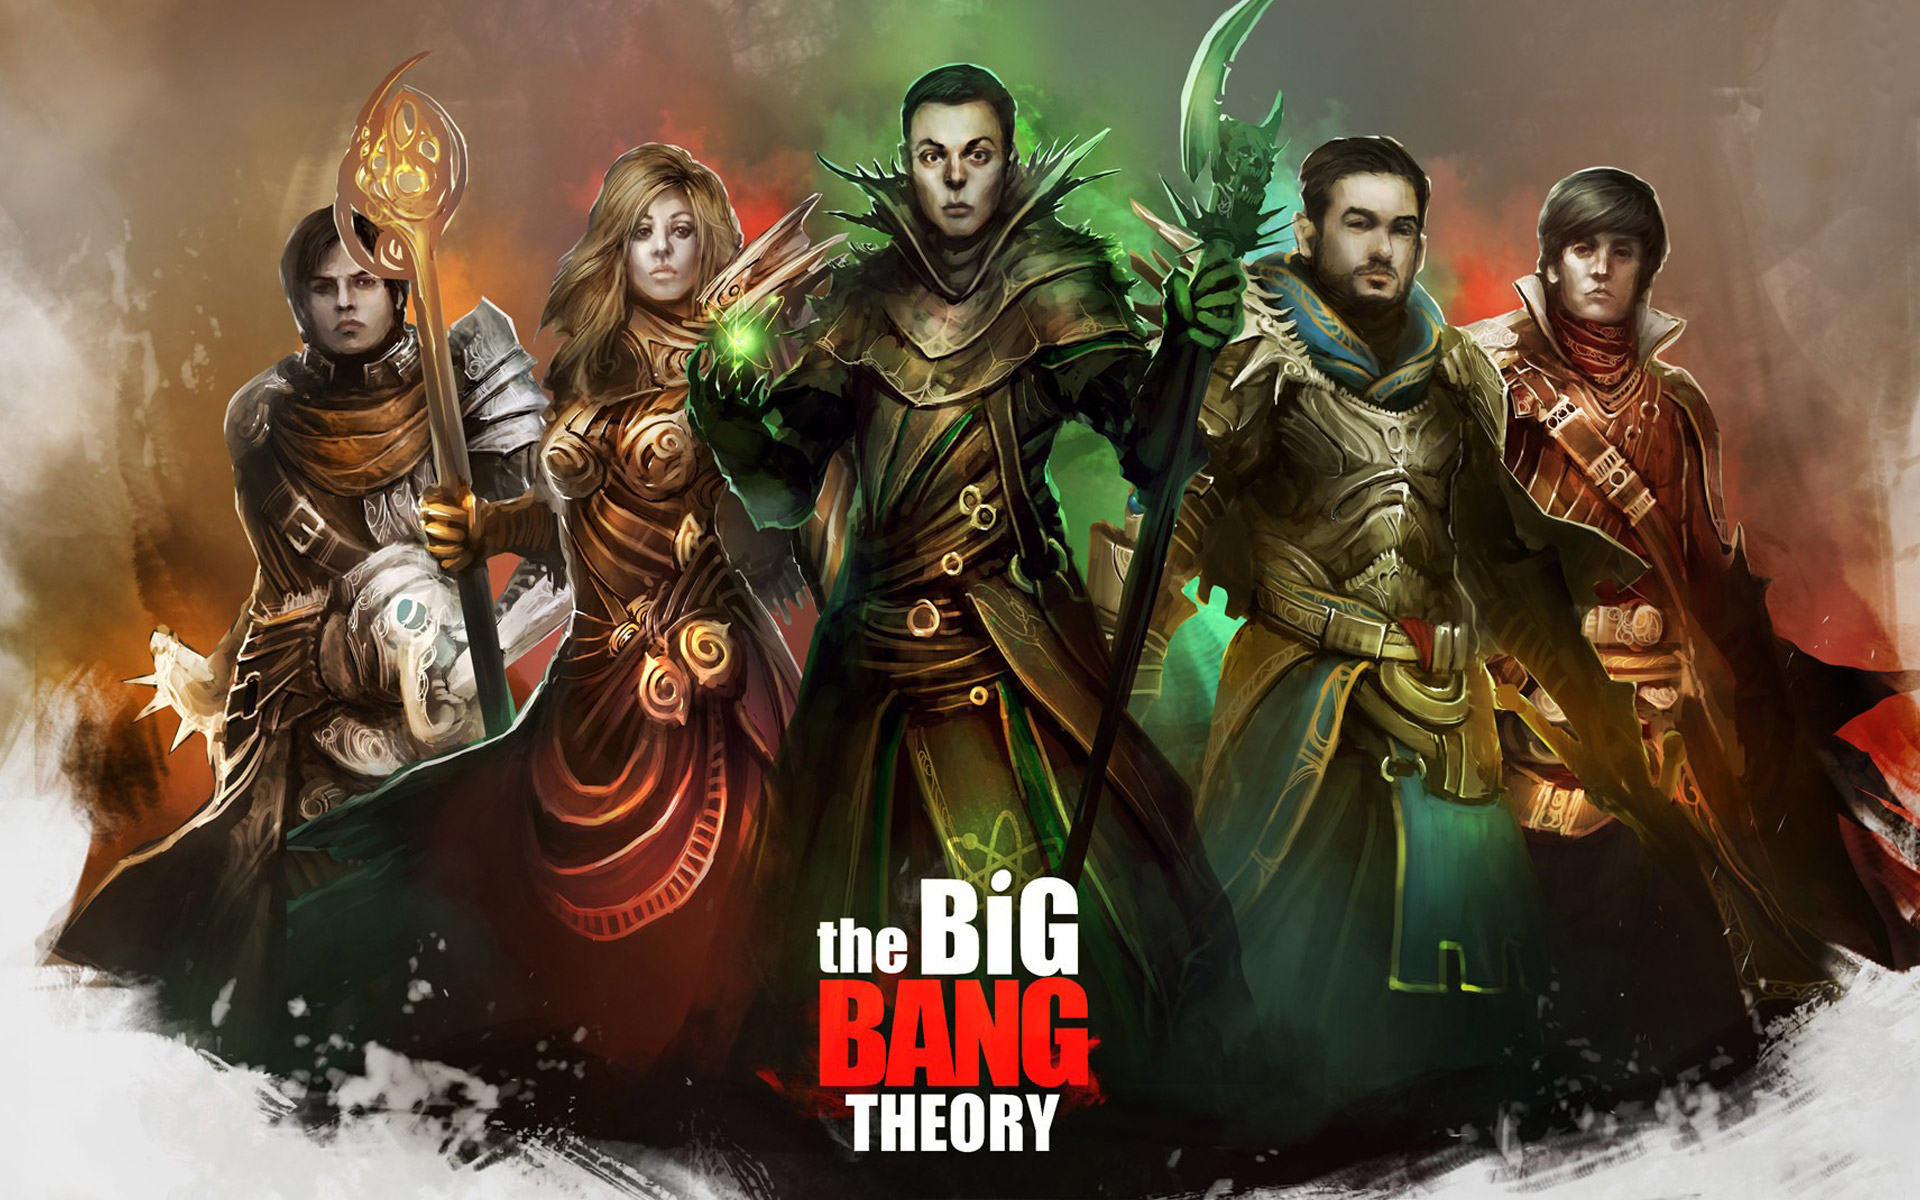 Free Download The Big Bang Theory Pictures Wallpaper High